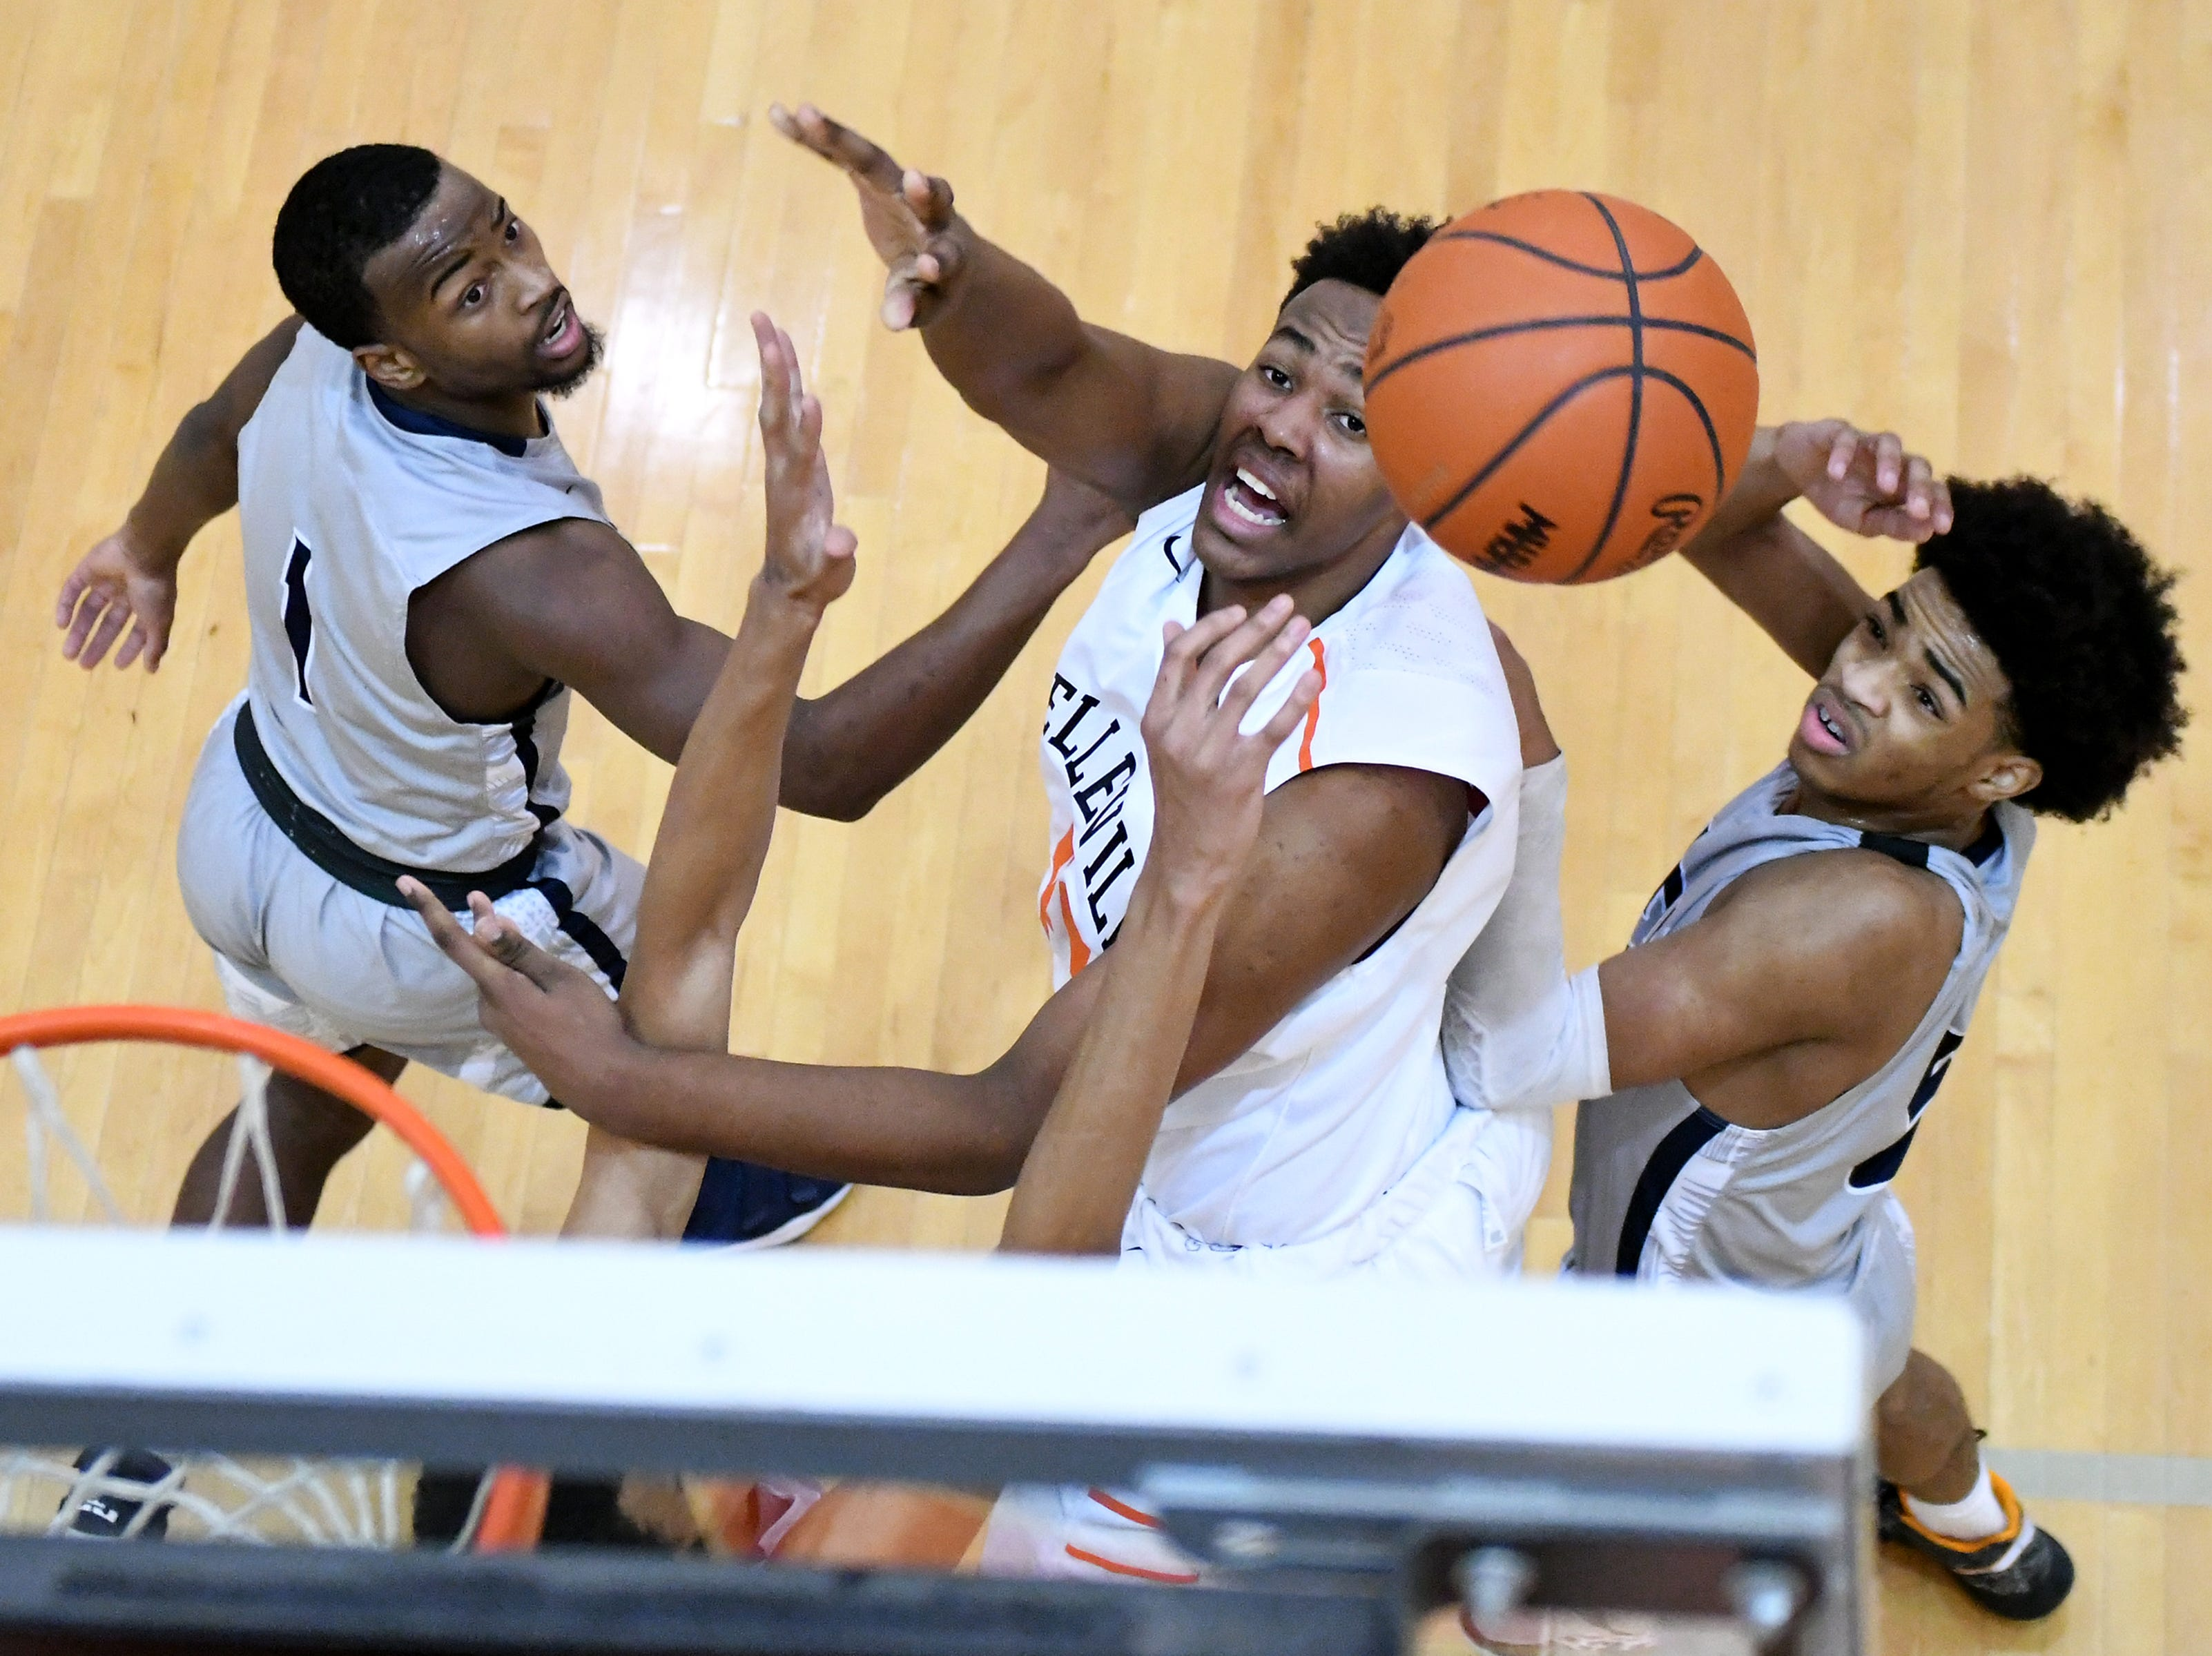 Belleville High School's Brandon Jackson, center, battles for a rebound with John Glenn High School's Elijah White, left, and Renel Thrasher Jr. right, during the first quarter at Belleville High School, January 11, 2019.